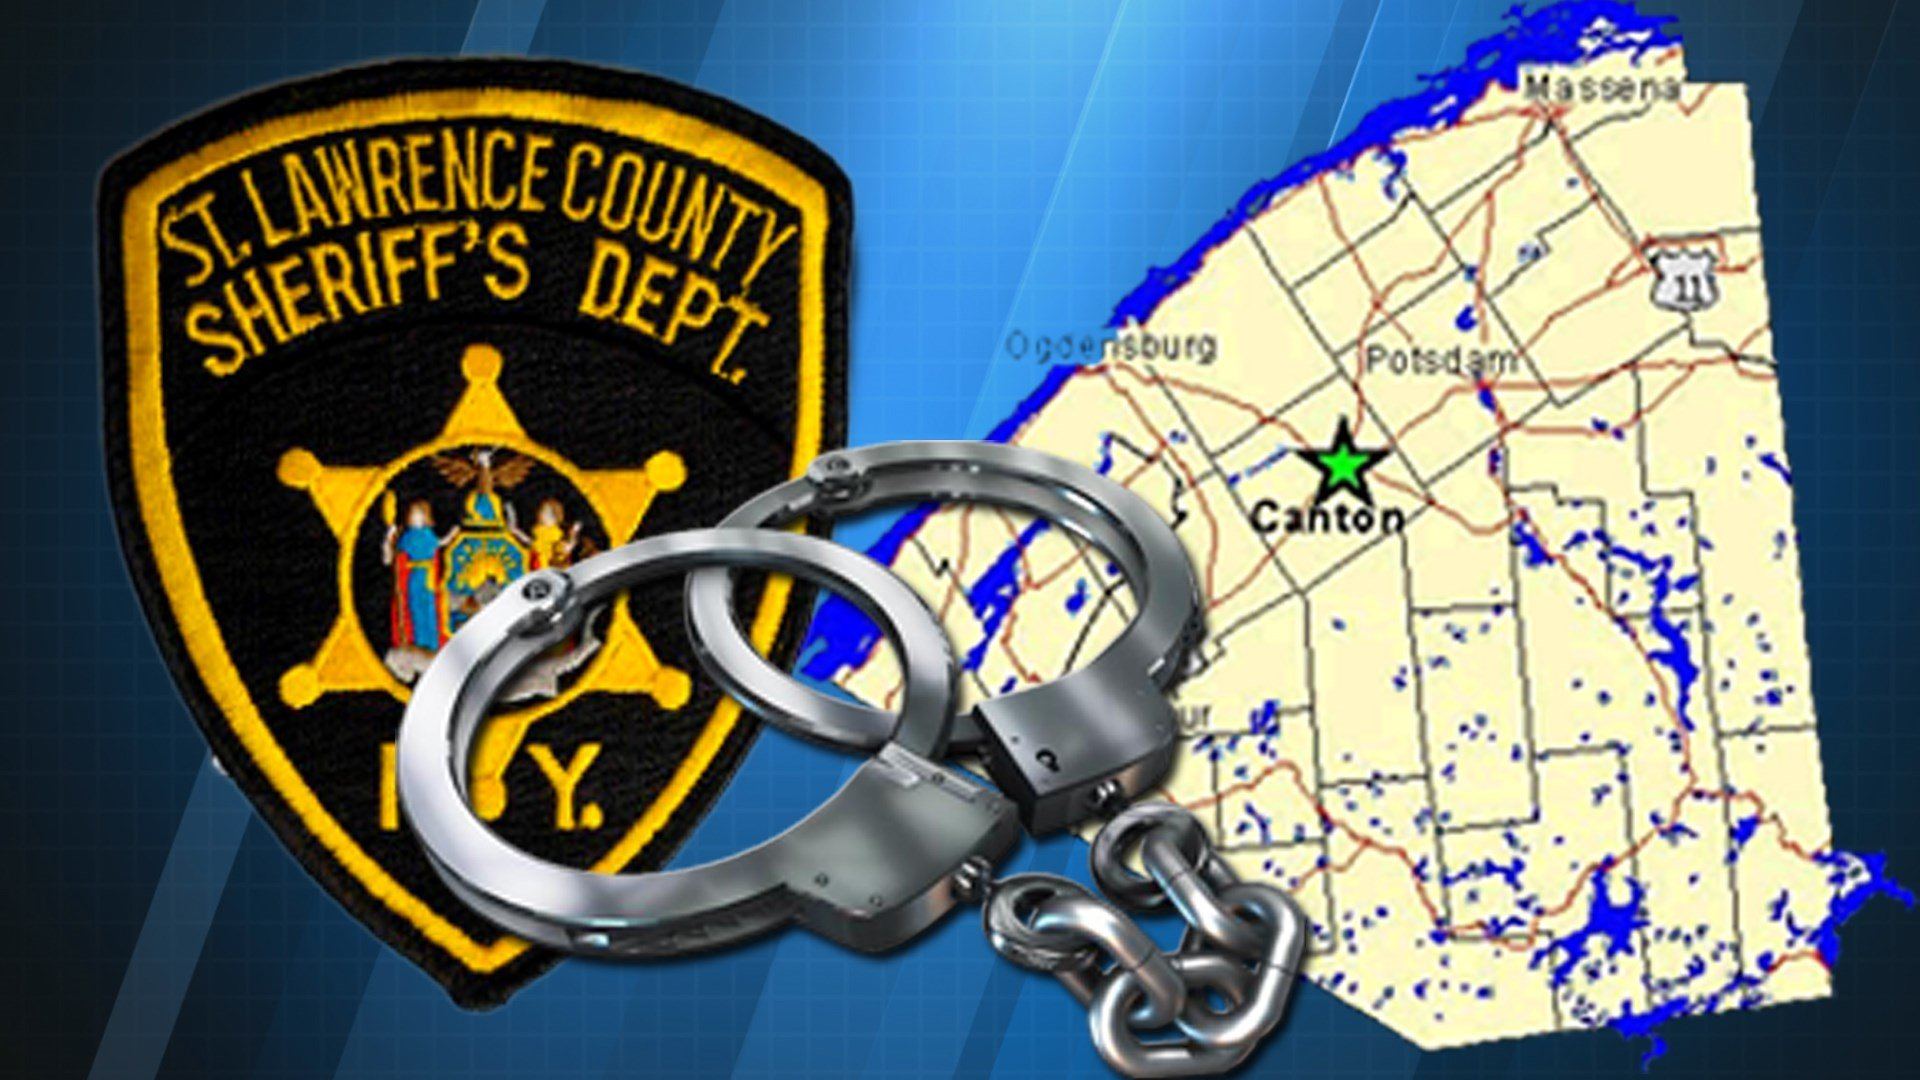 St Lawrence County sheriff handcuffs arrest Caption